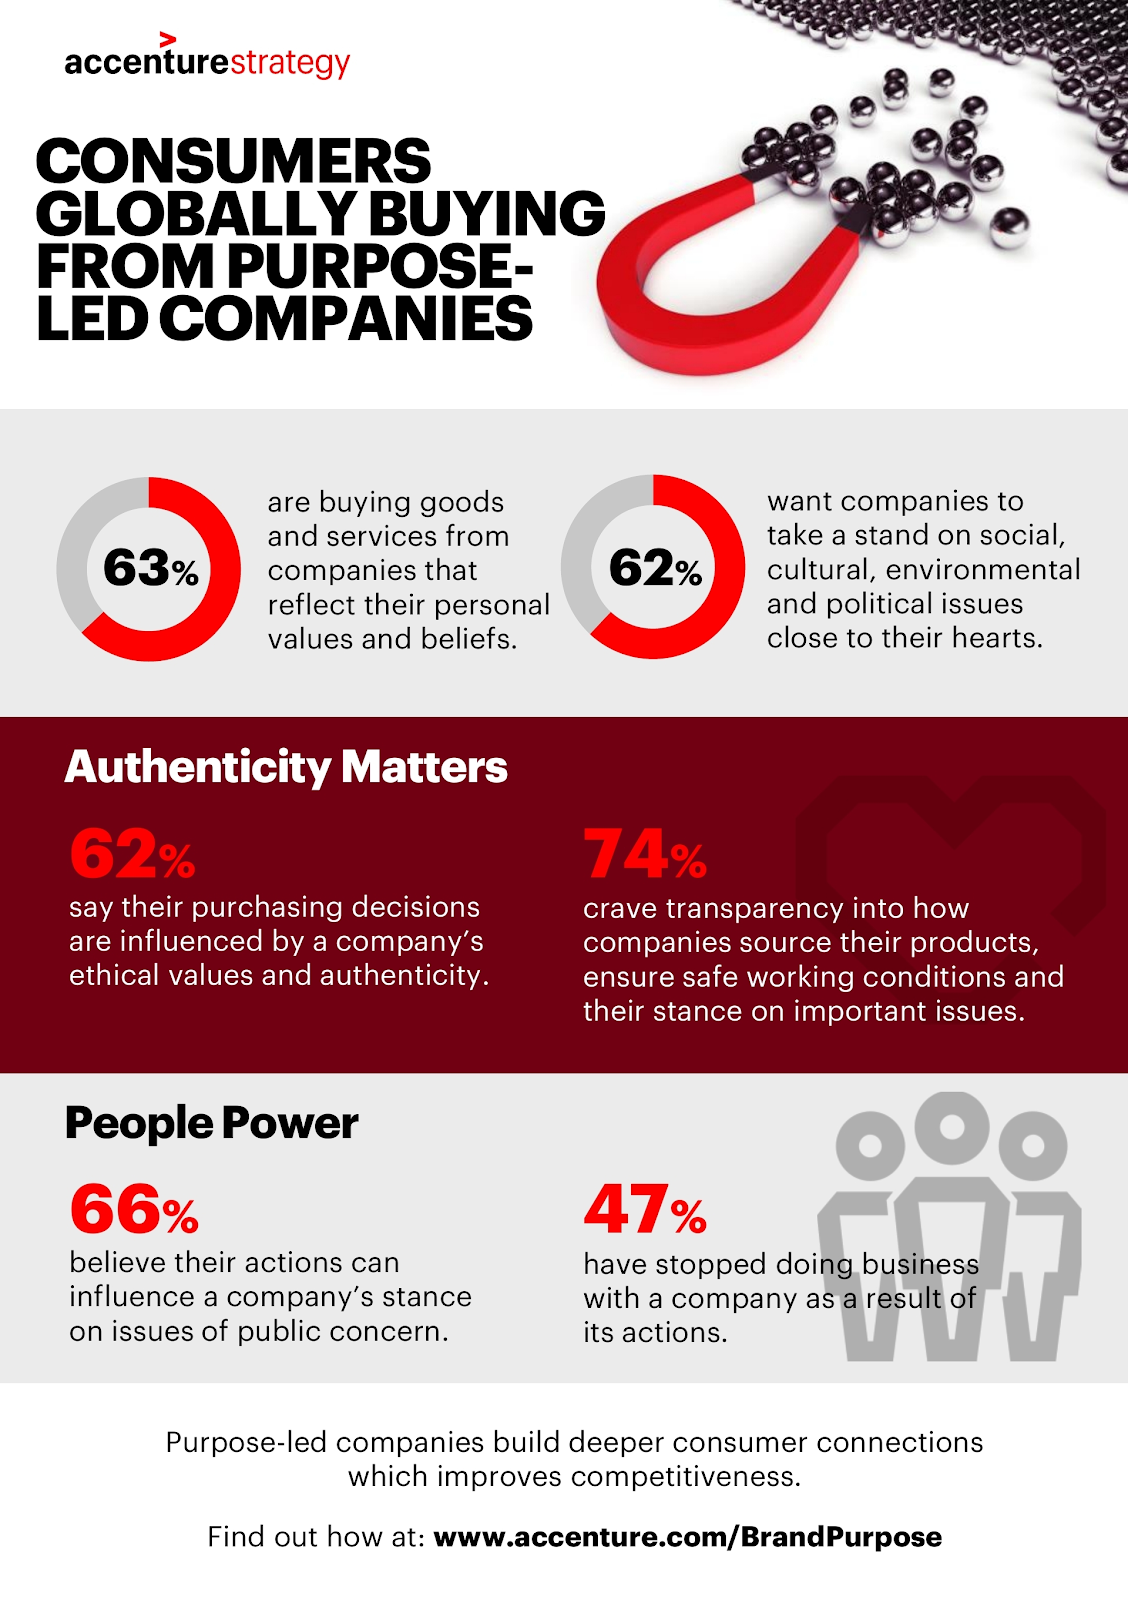 changing customer behaviors - buying from purpose-led companies